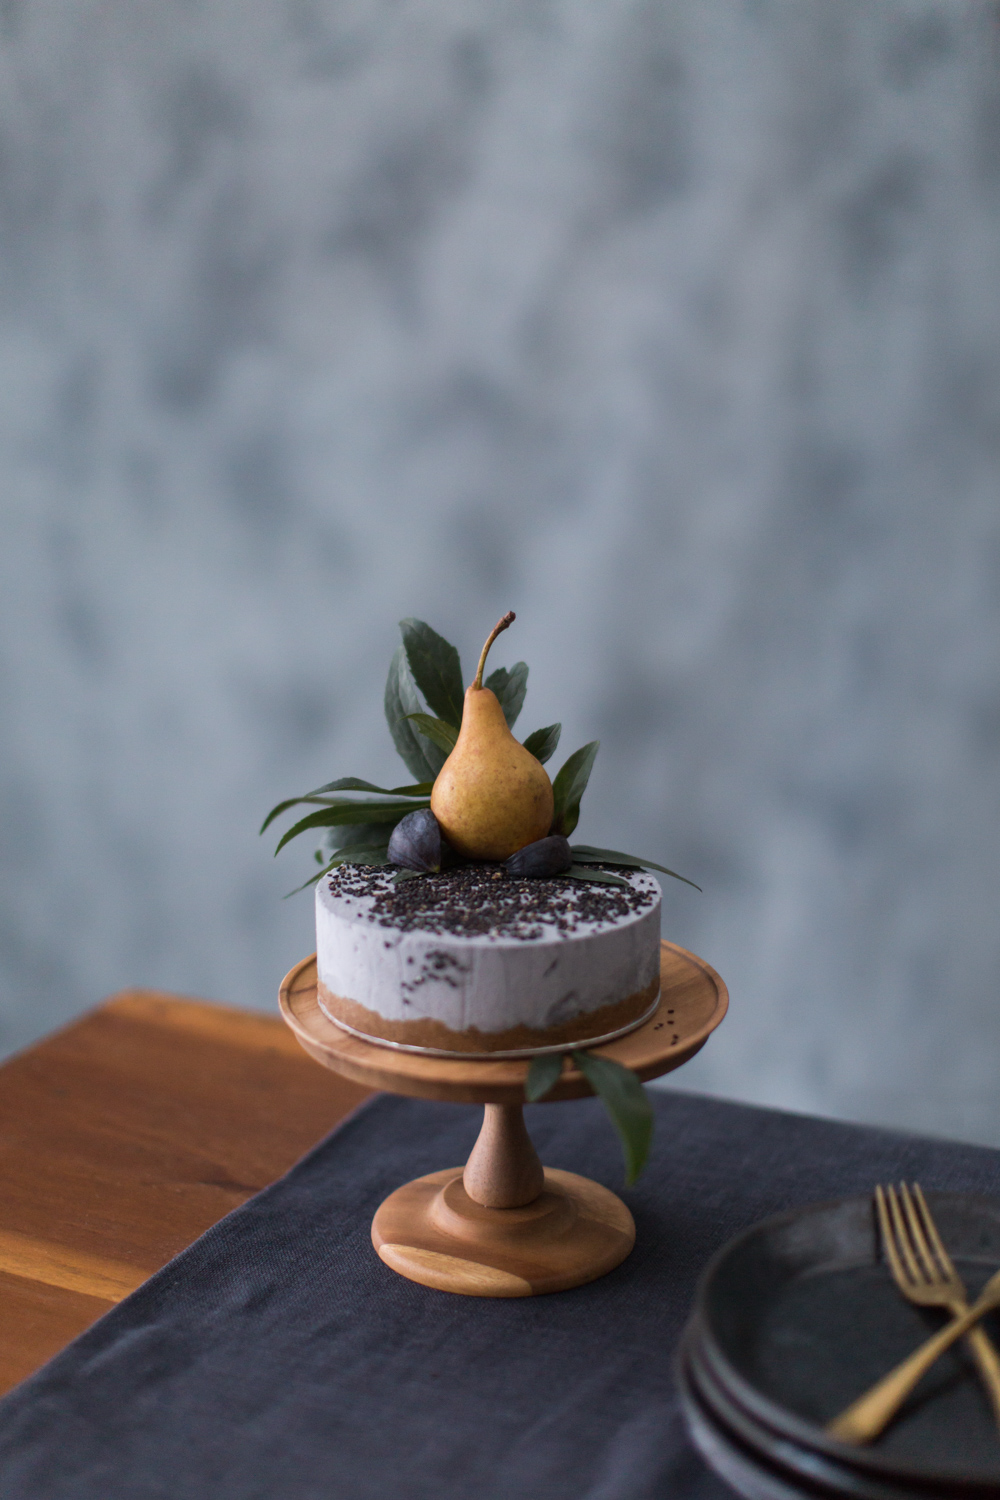 Black sesame cake and brass cutlery